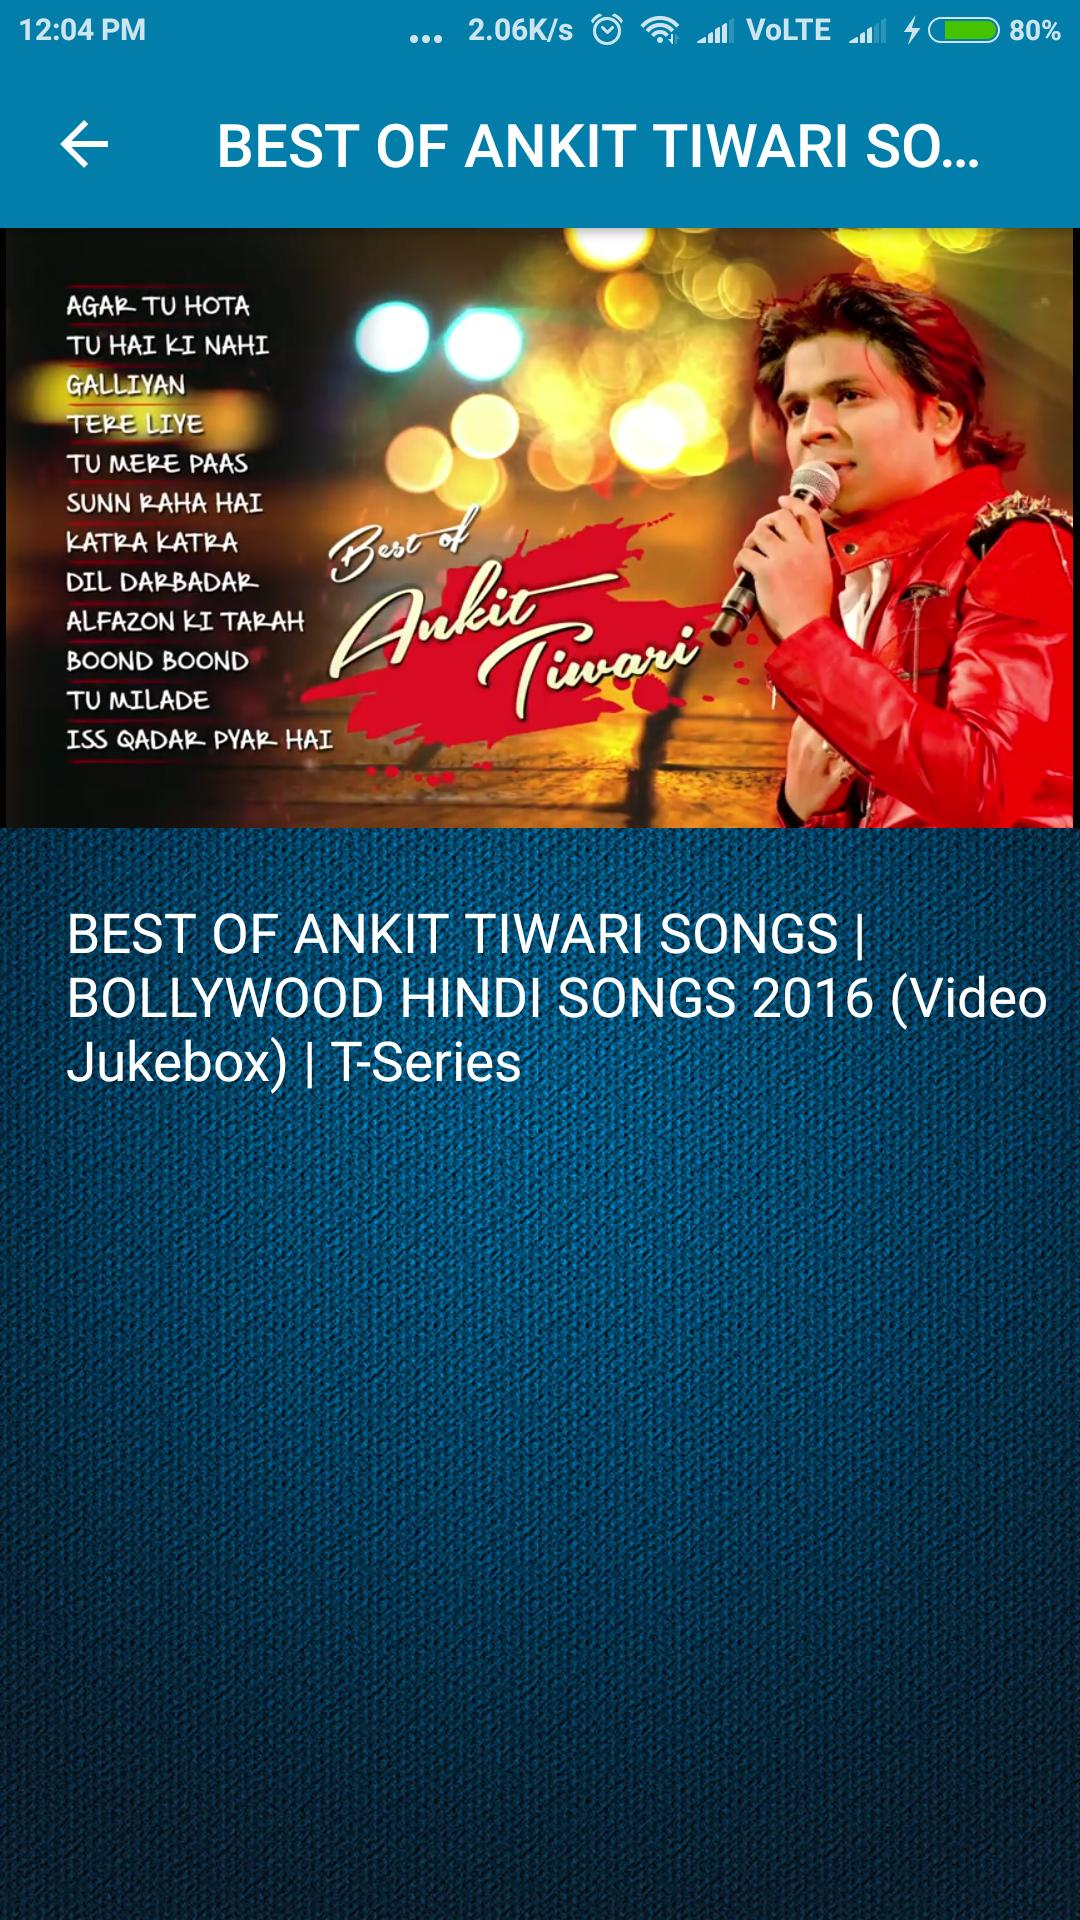 galliyan ankit tiwari download